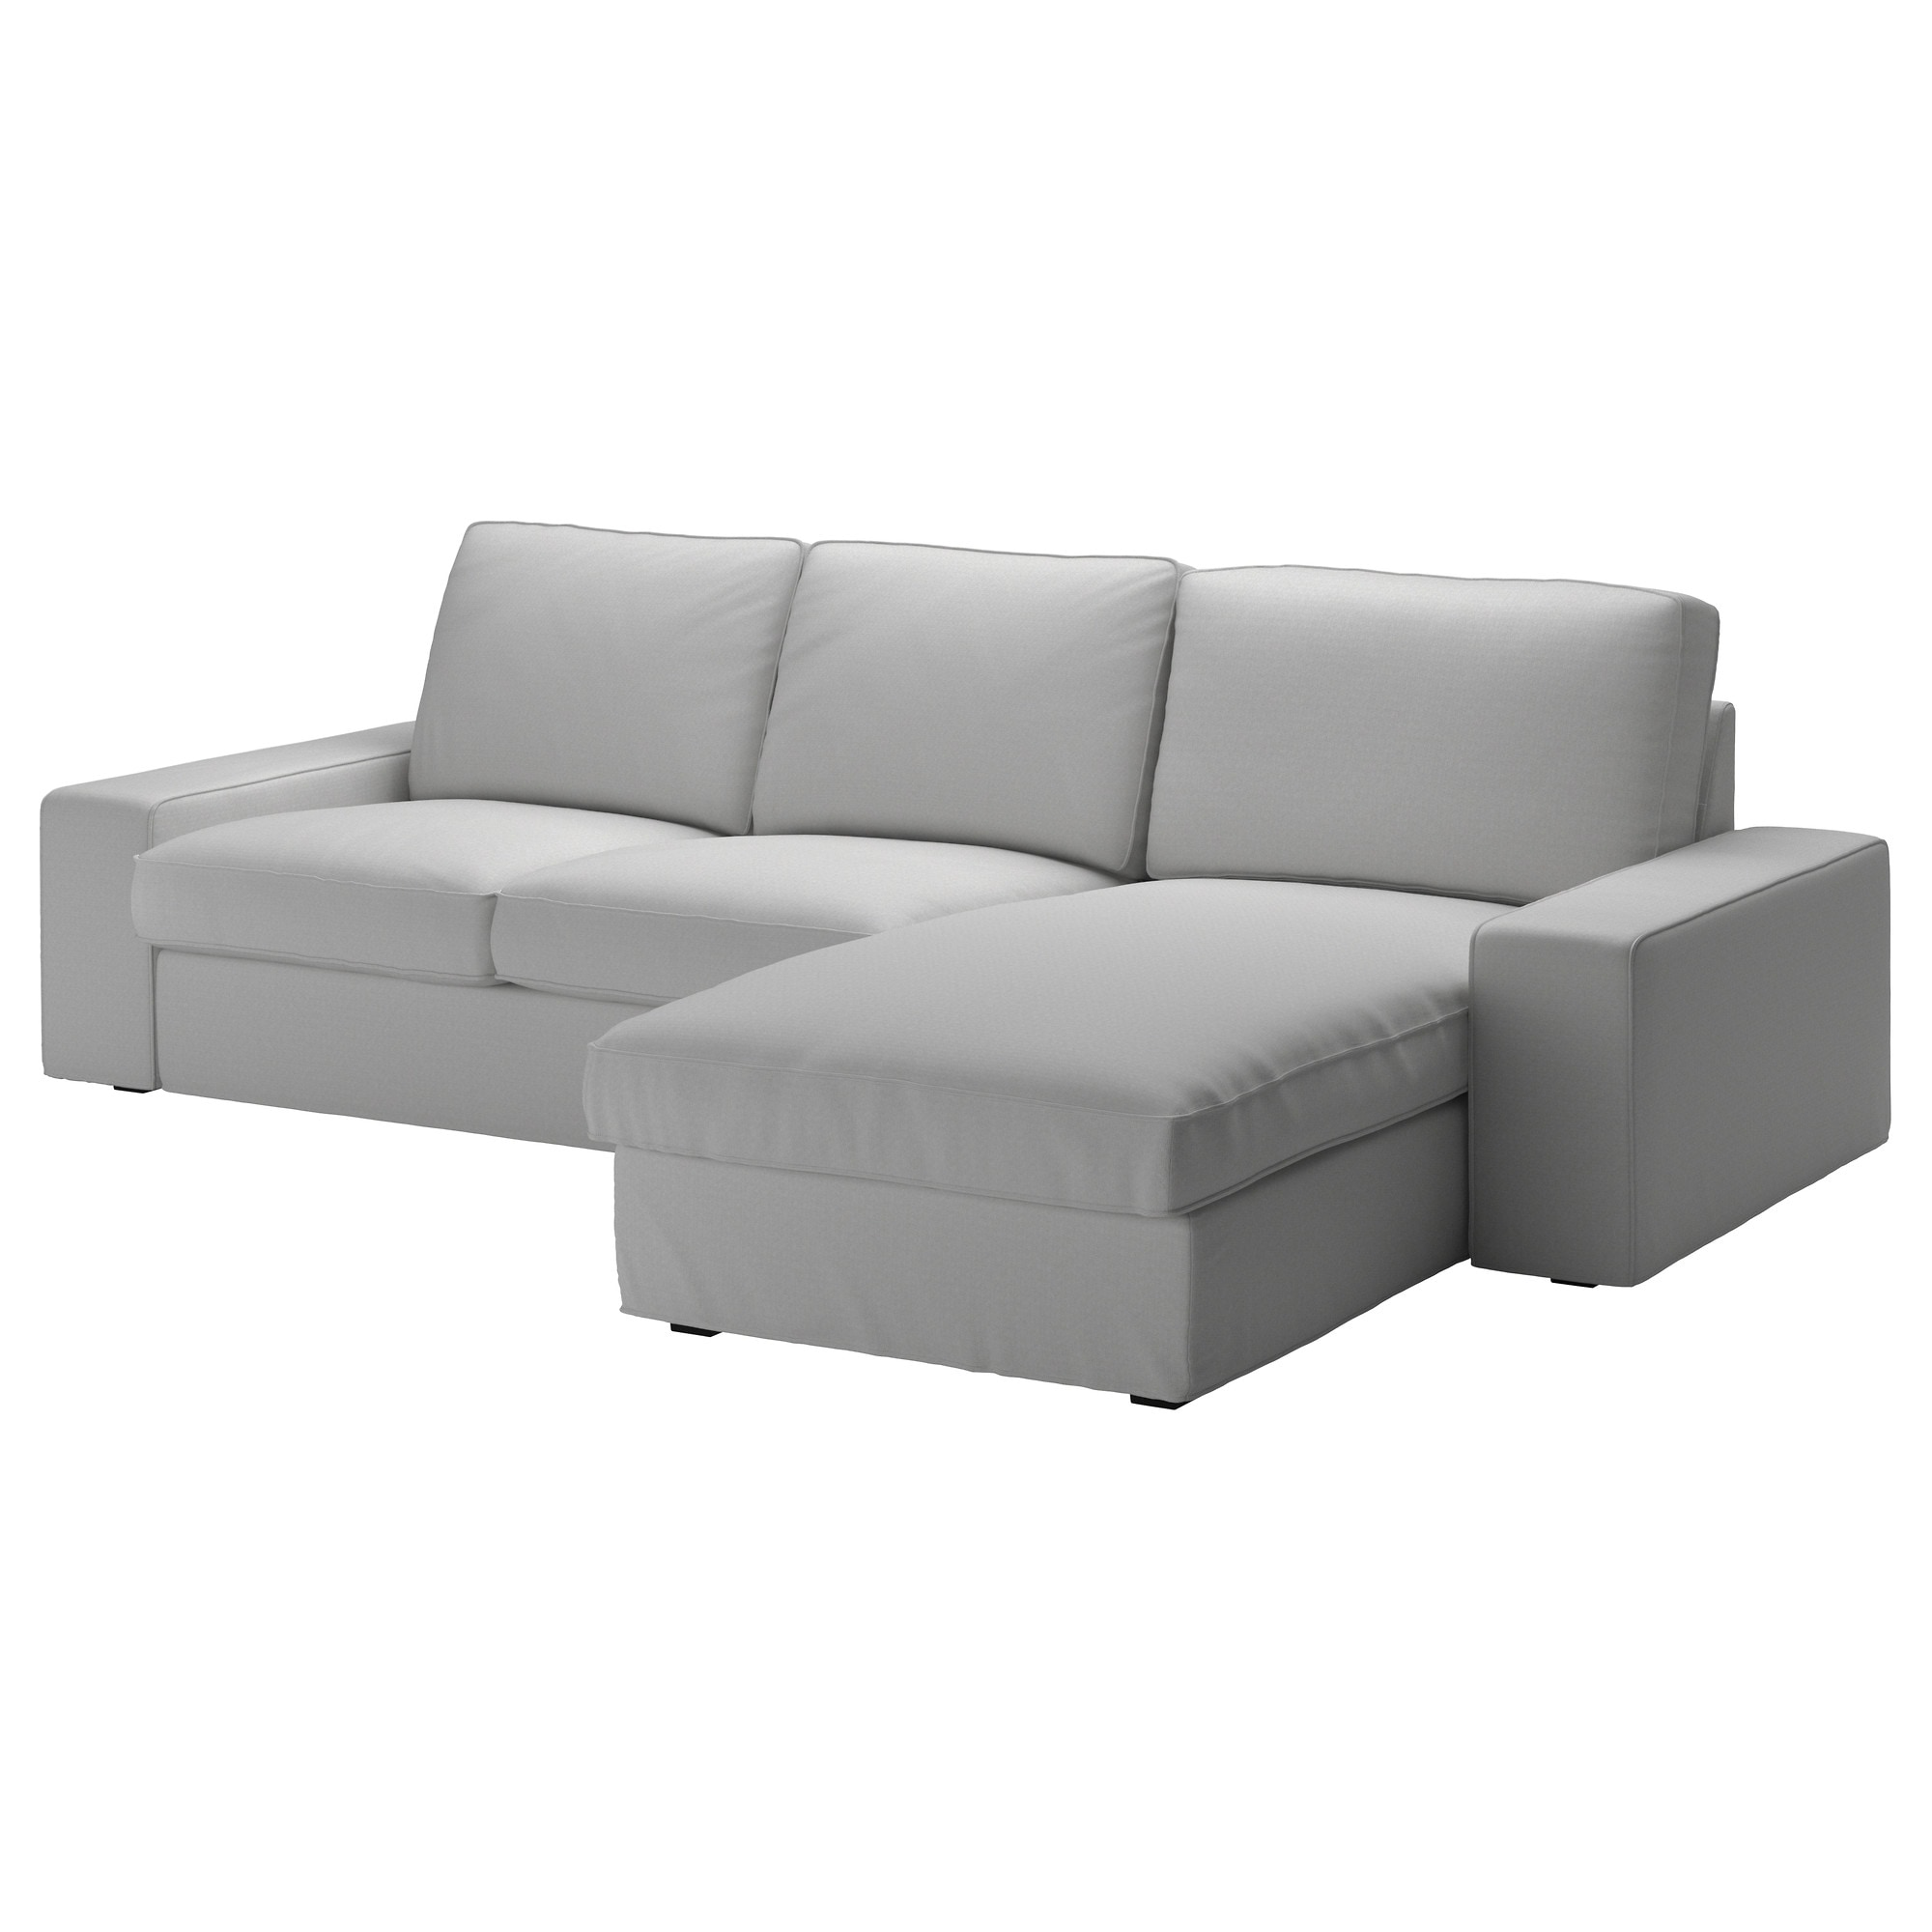 sc 1 st  Ikea : chaise ikea - Sectionals, Sofas & Couches